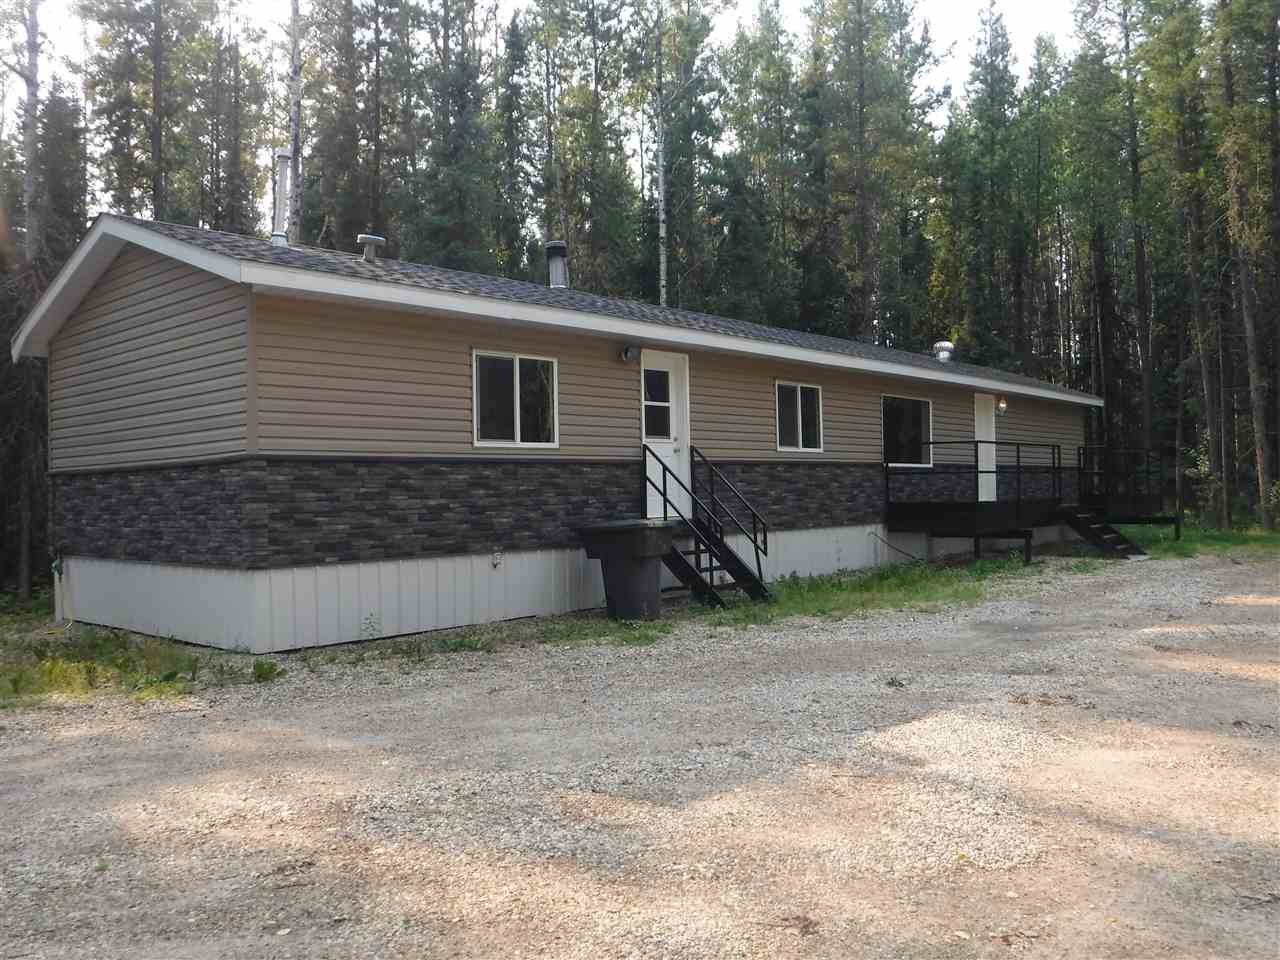 8130 Twp 485 Drayton Valley AB T7A 2A3